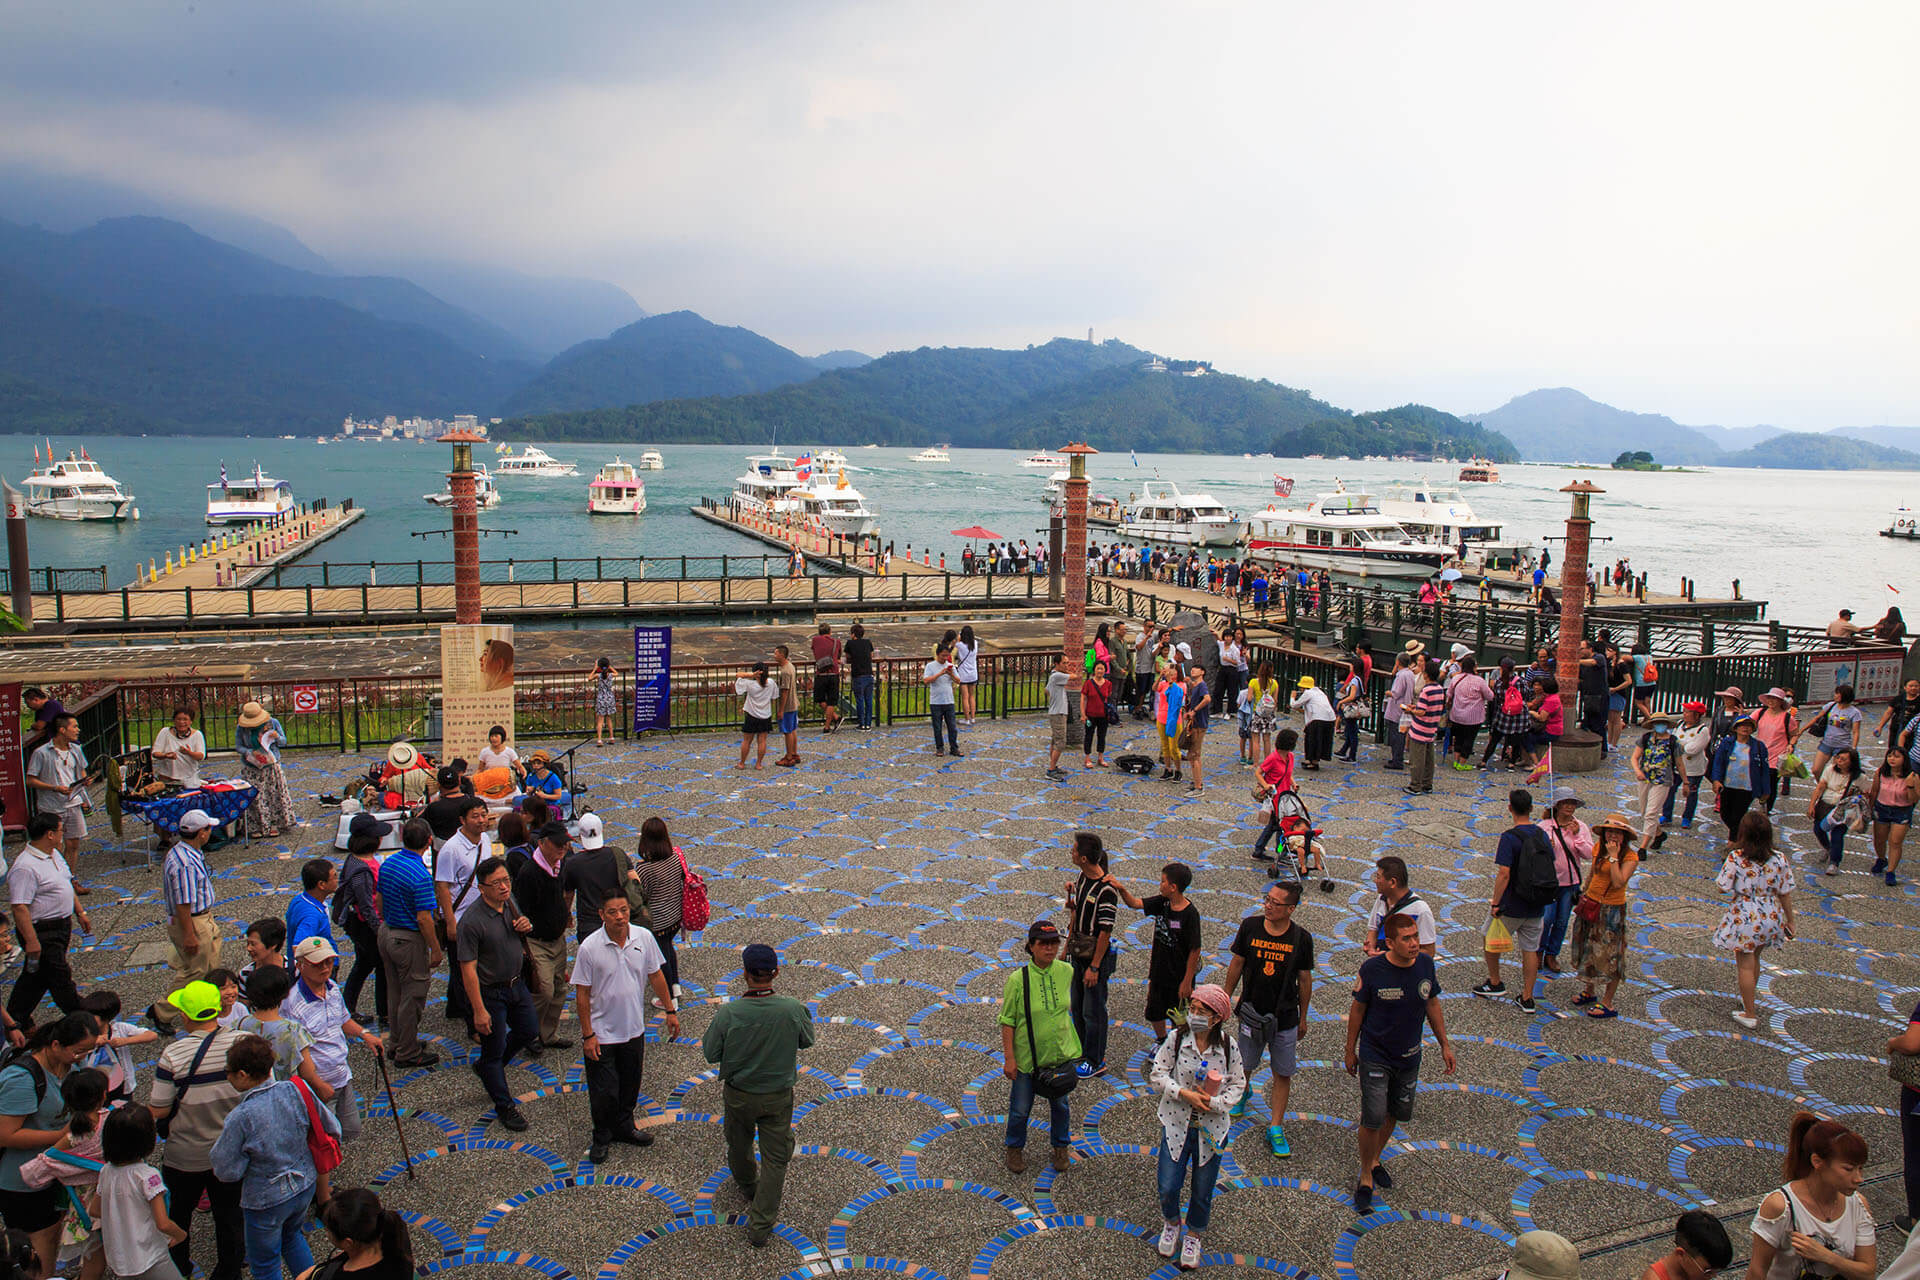 Taiwan Tourism rustling up business in India